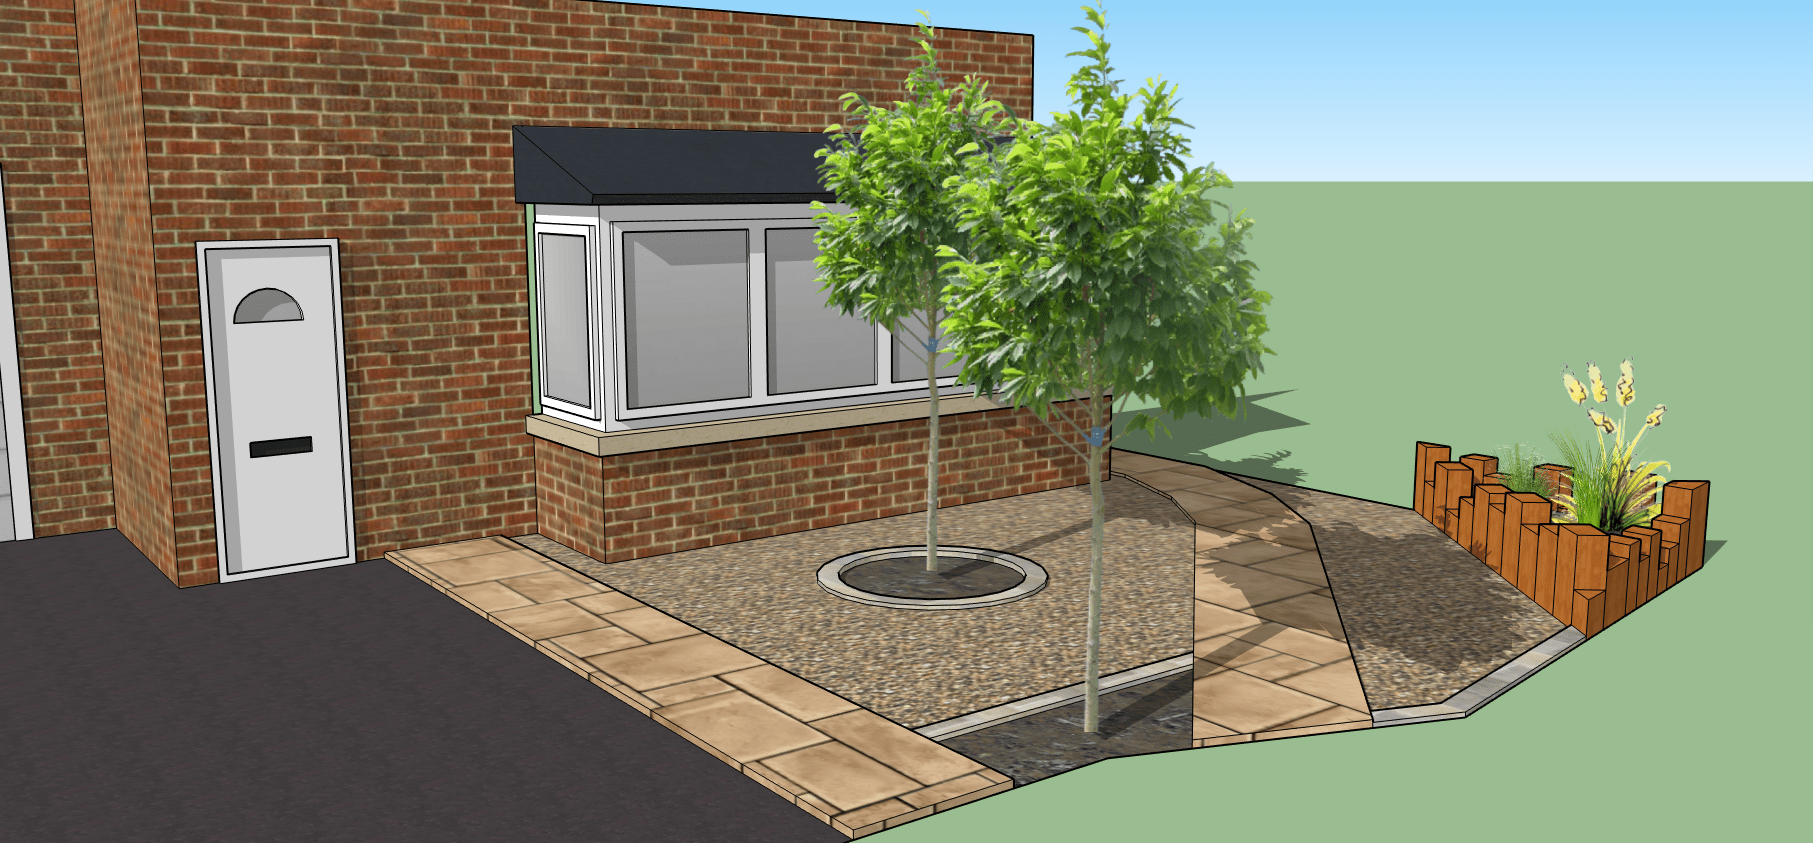 3d garden design. Small front garden with castle sleeper bed